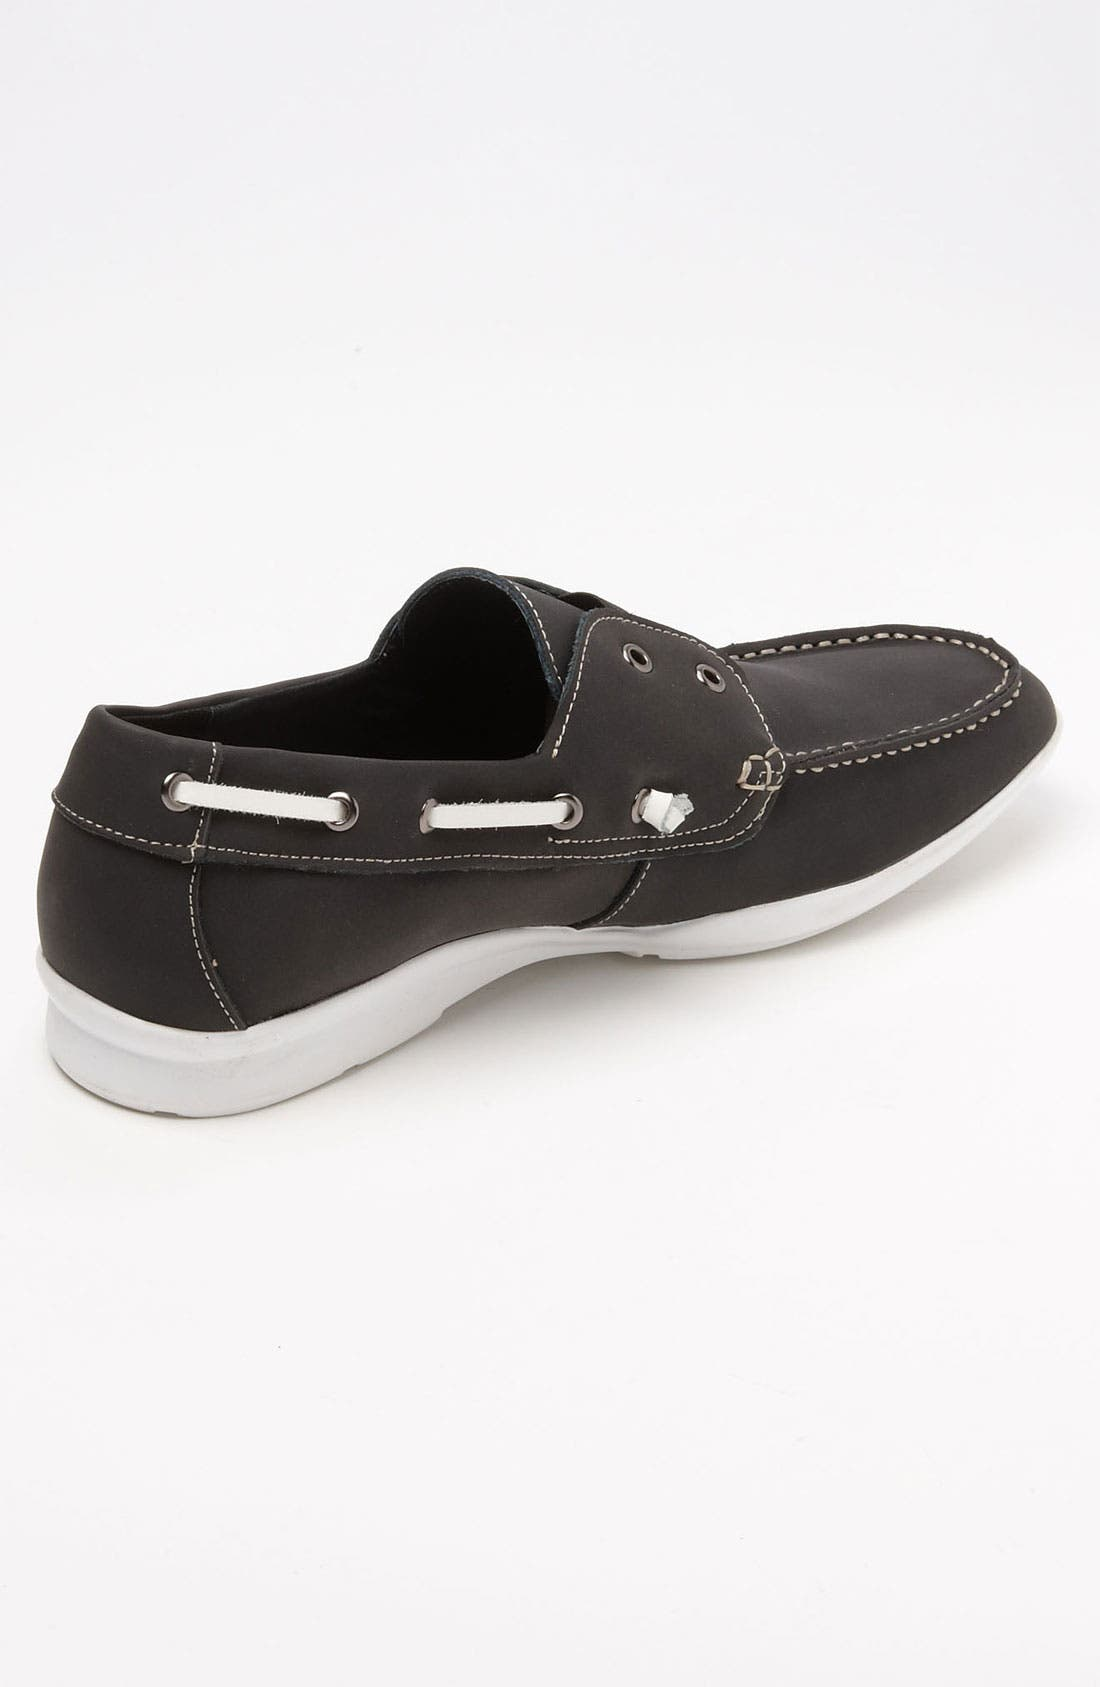 Alternate Image 2  - J.D. Fisk 'Brave' Boat Shoe